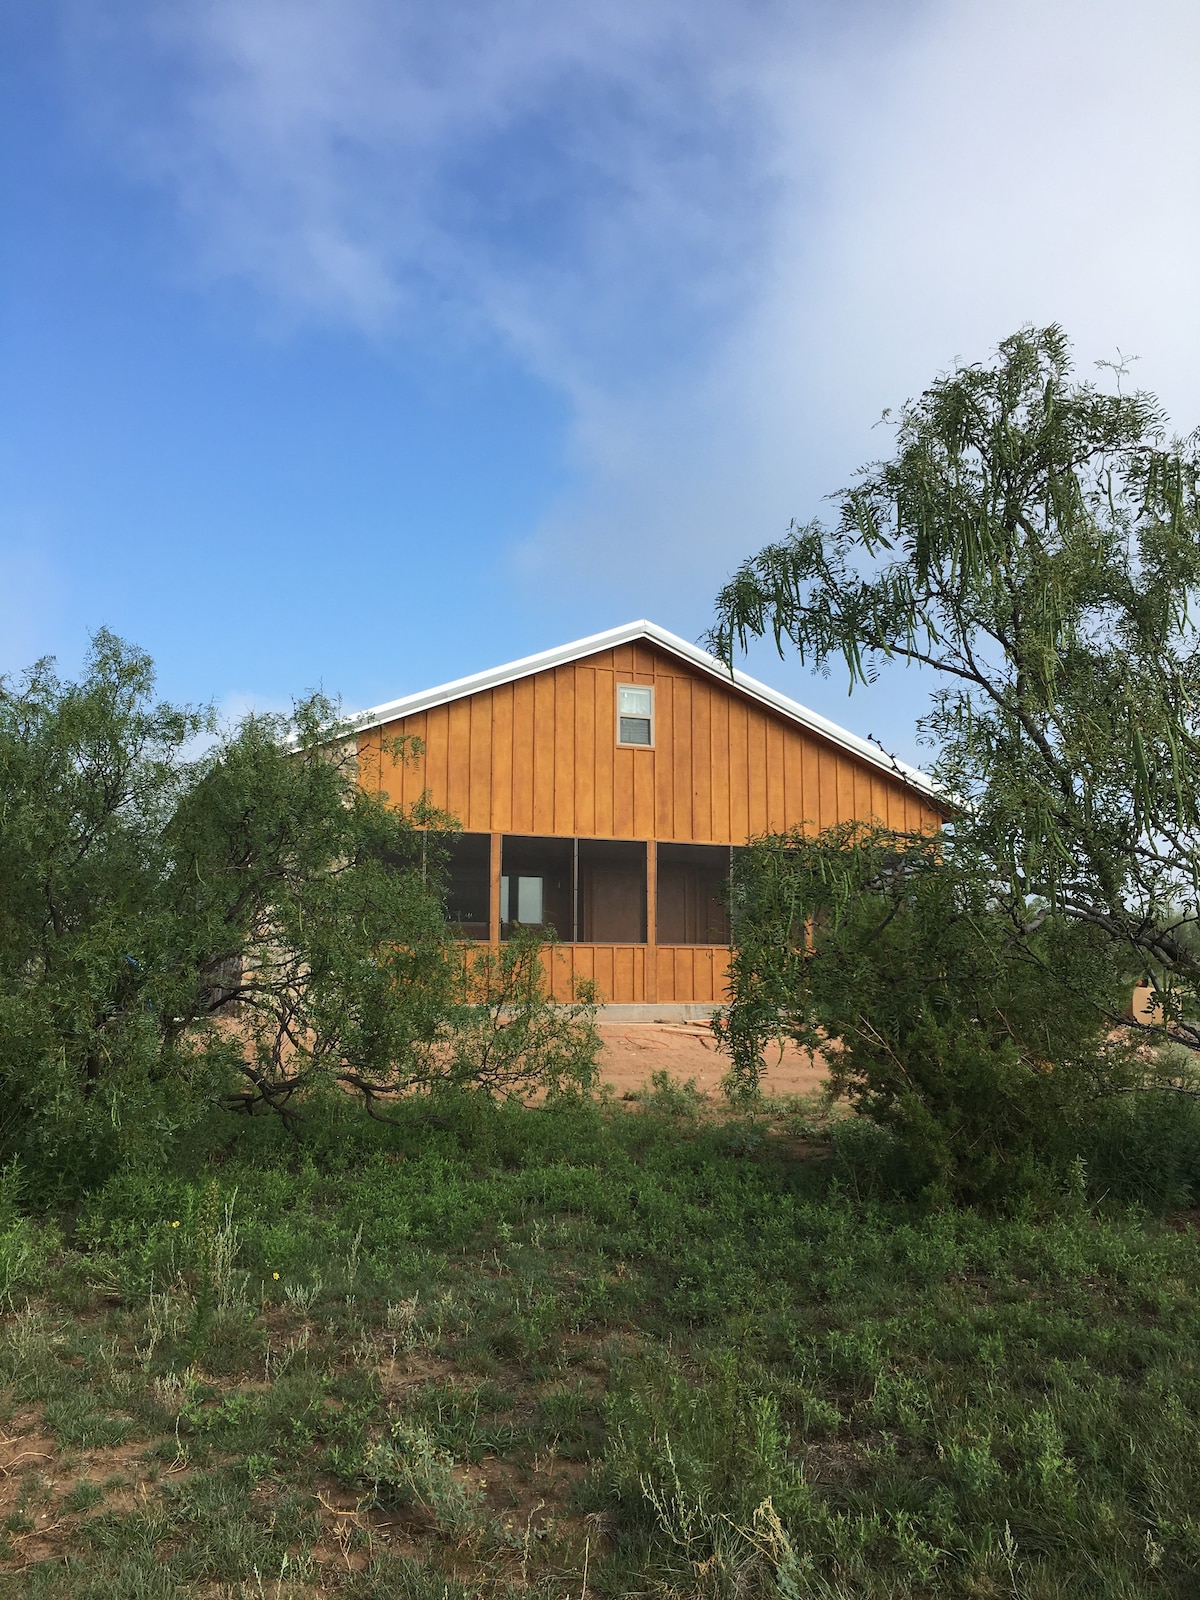 Quiet Cabin In The Country Near Palo Duro Canyon State Park.